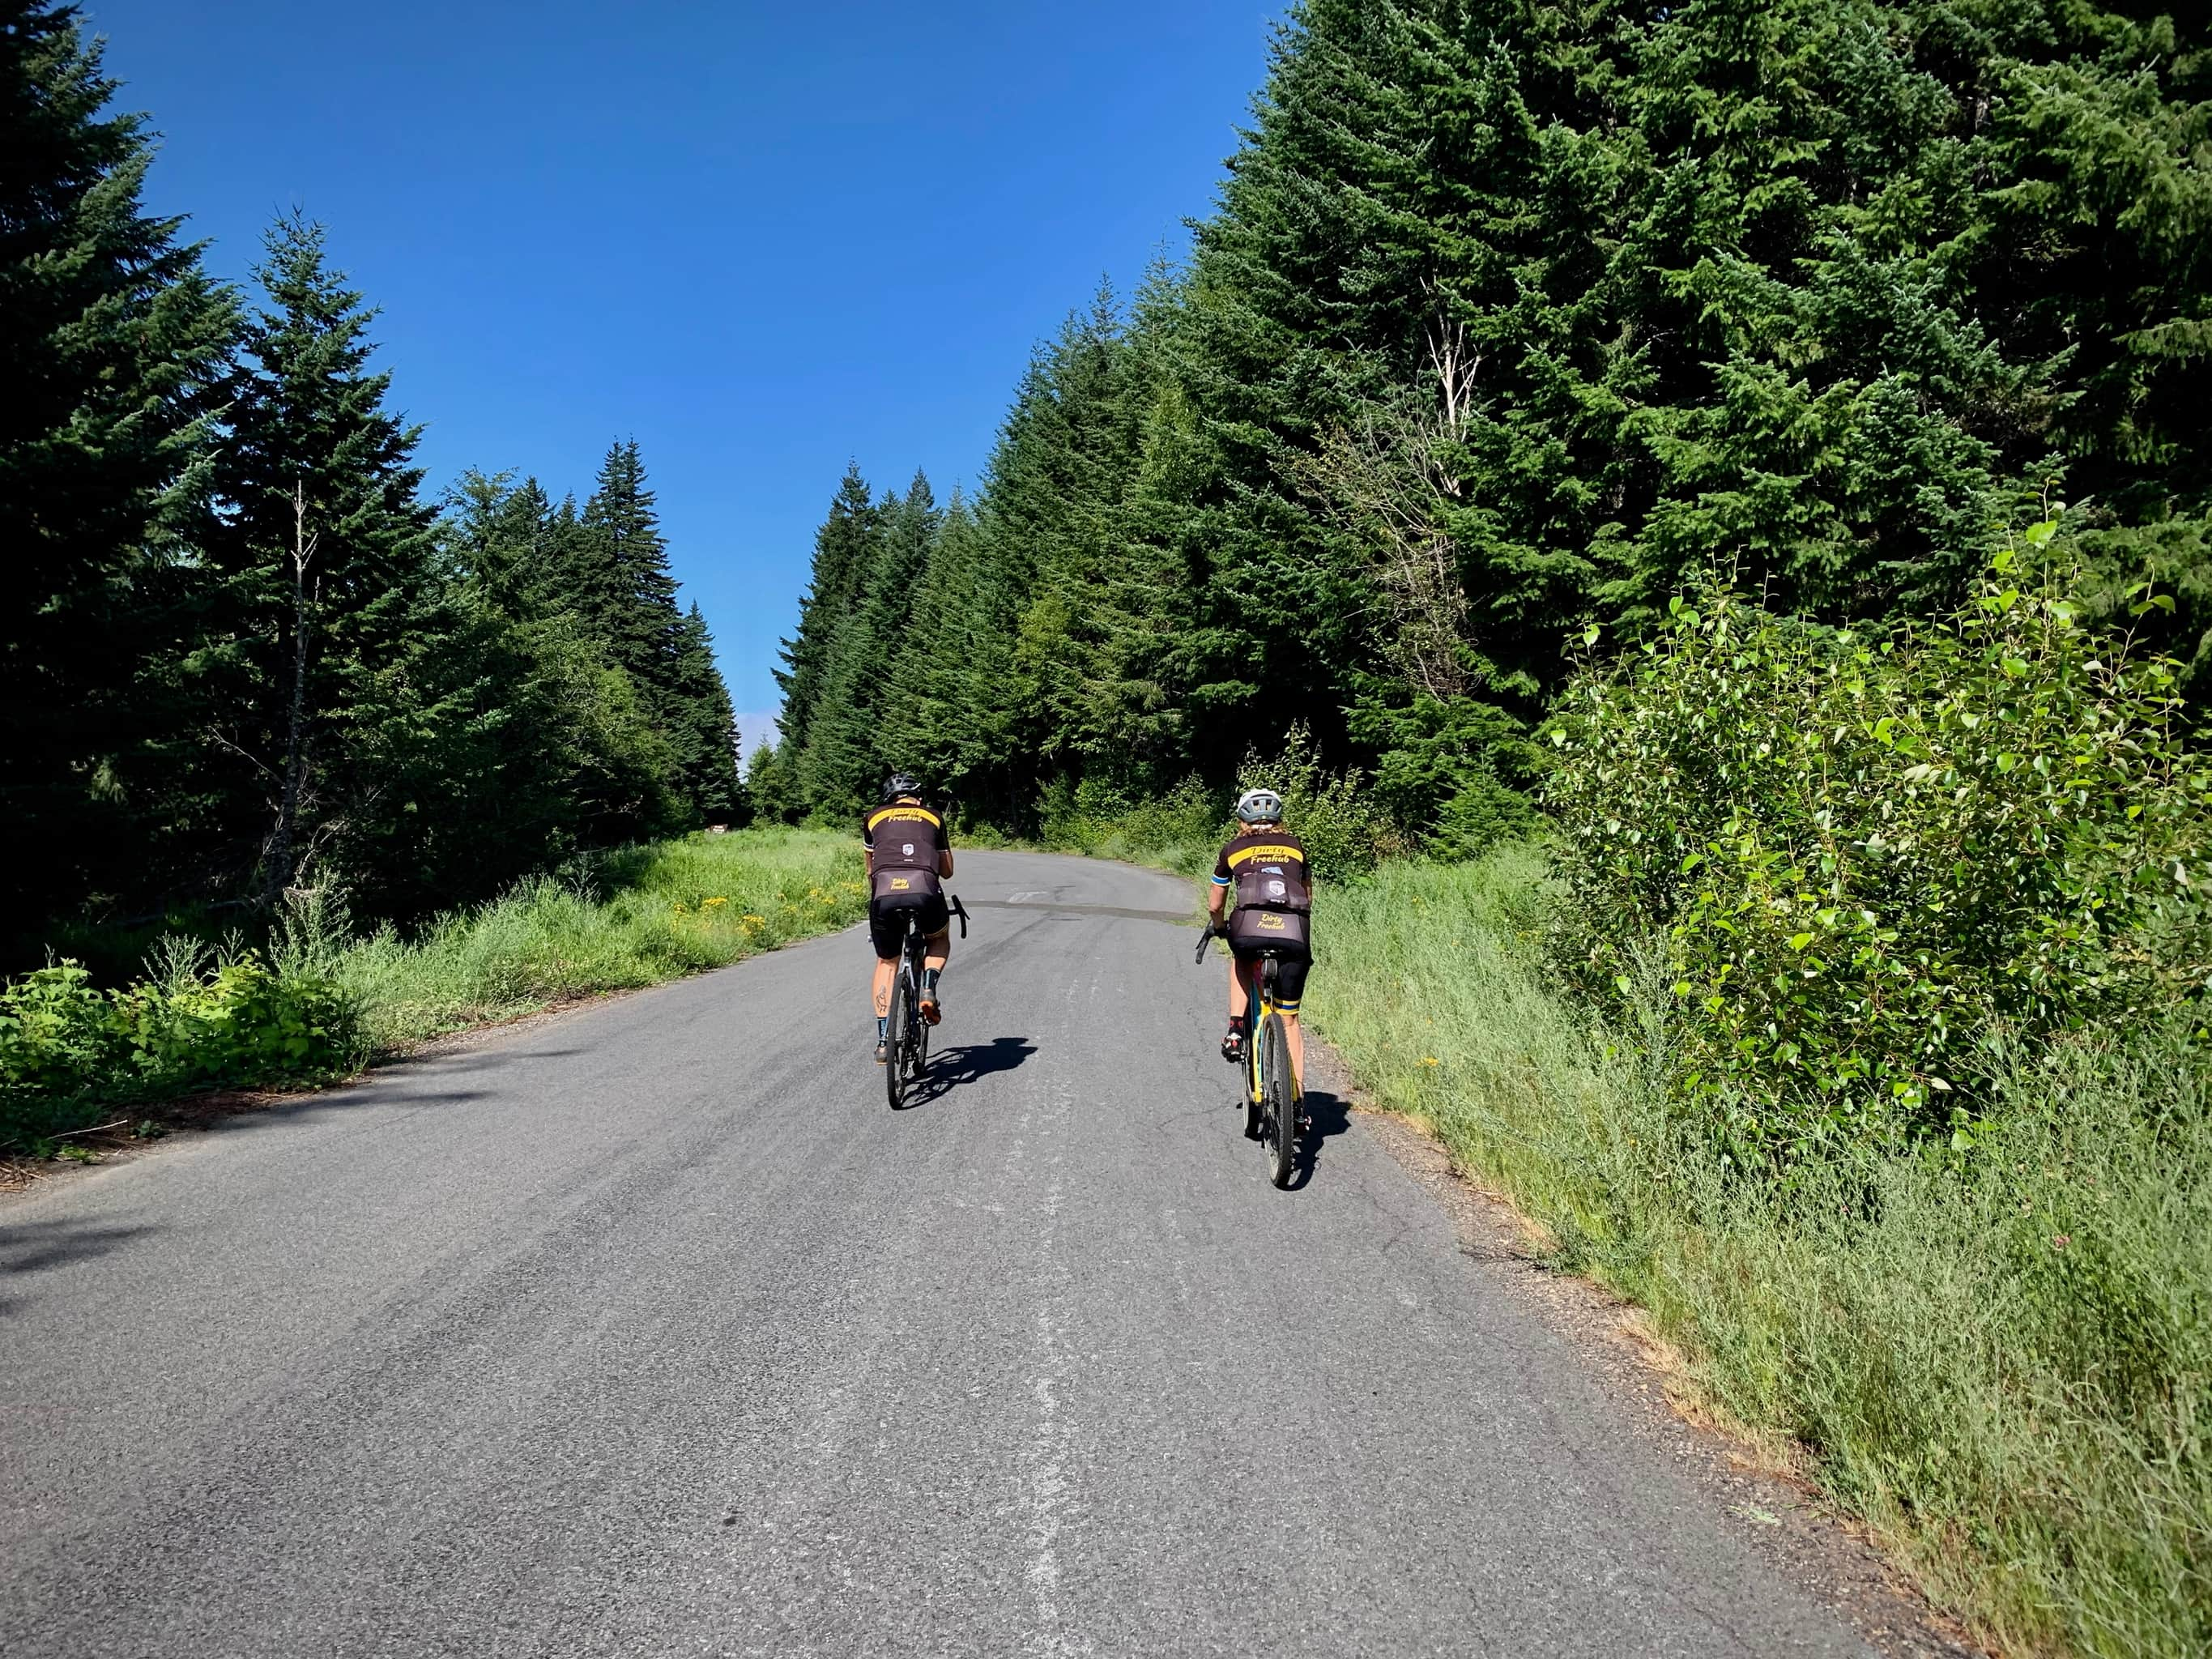 Two cyclists on paved road, Laurance Lake road near Hood River, Oregon.